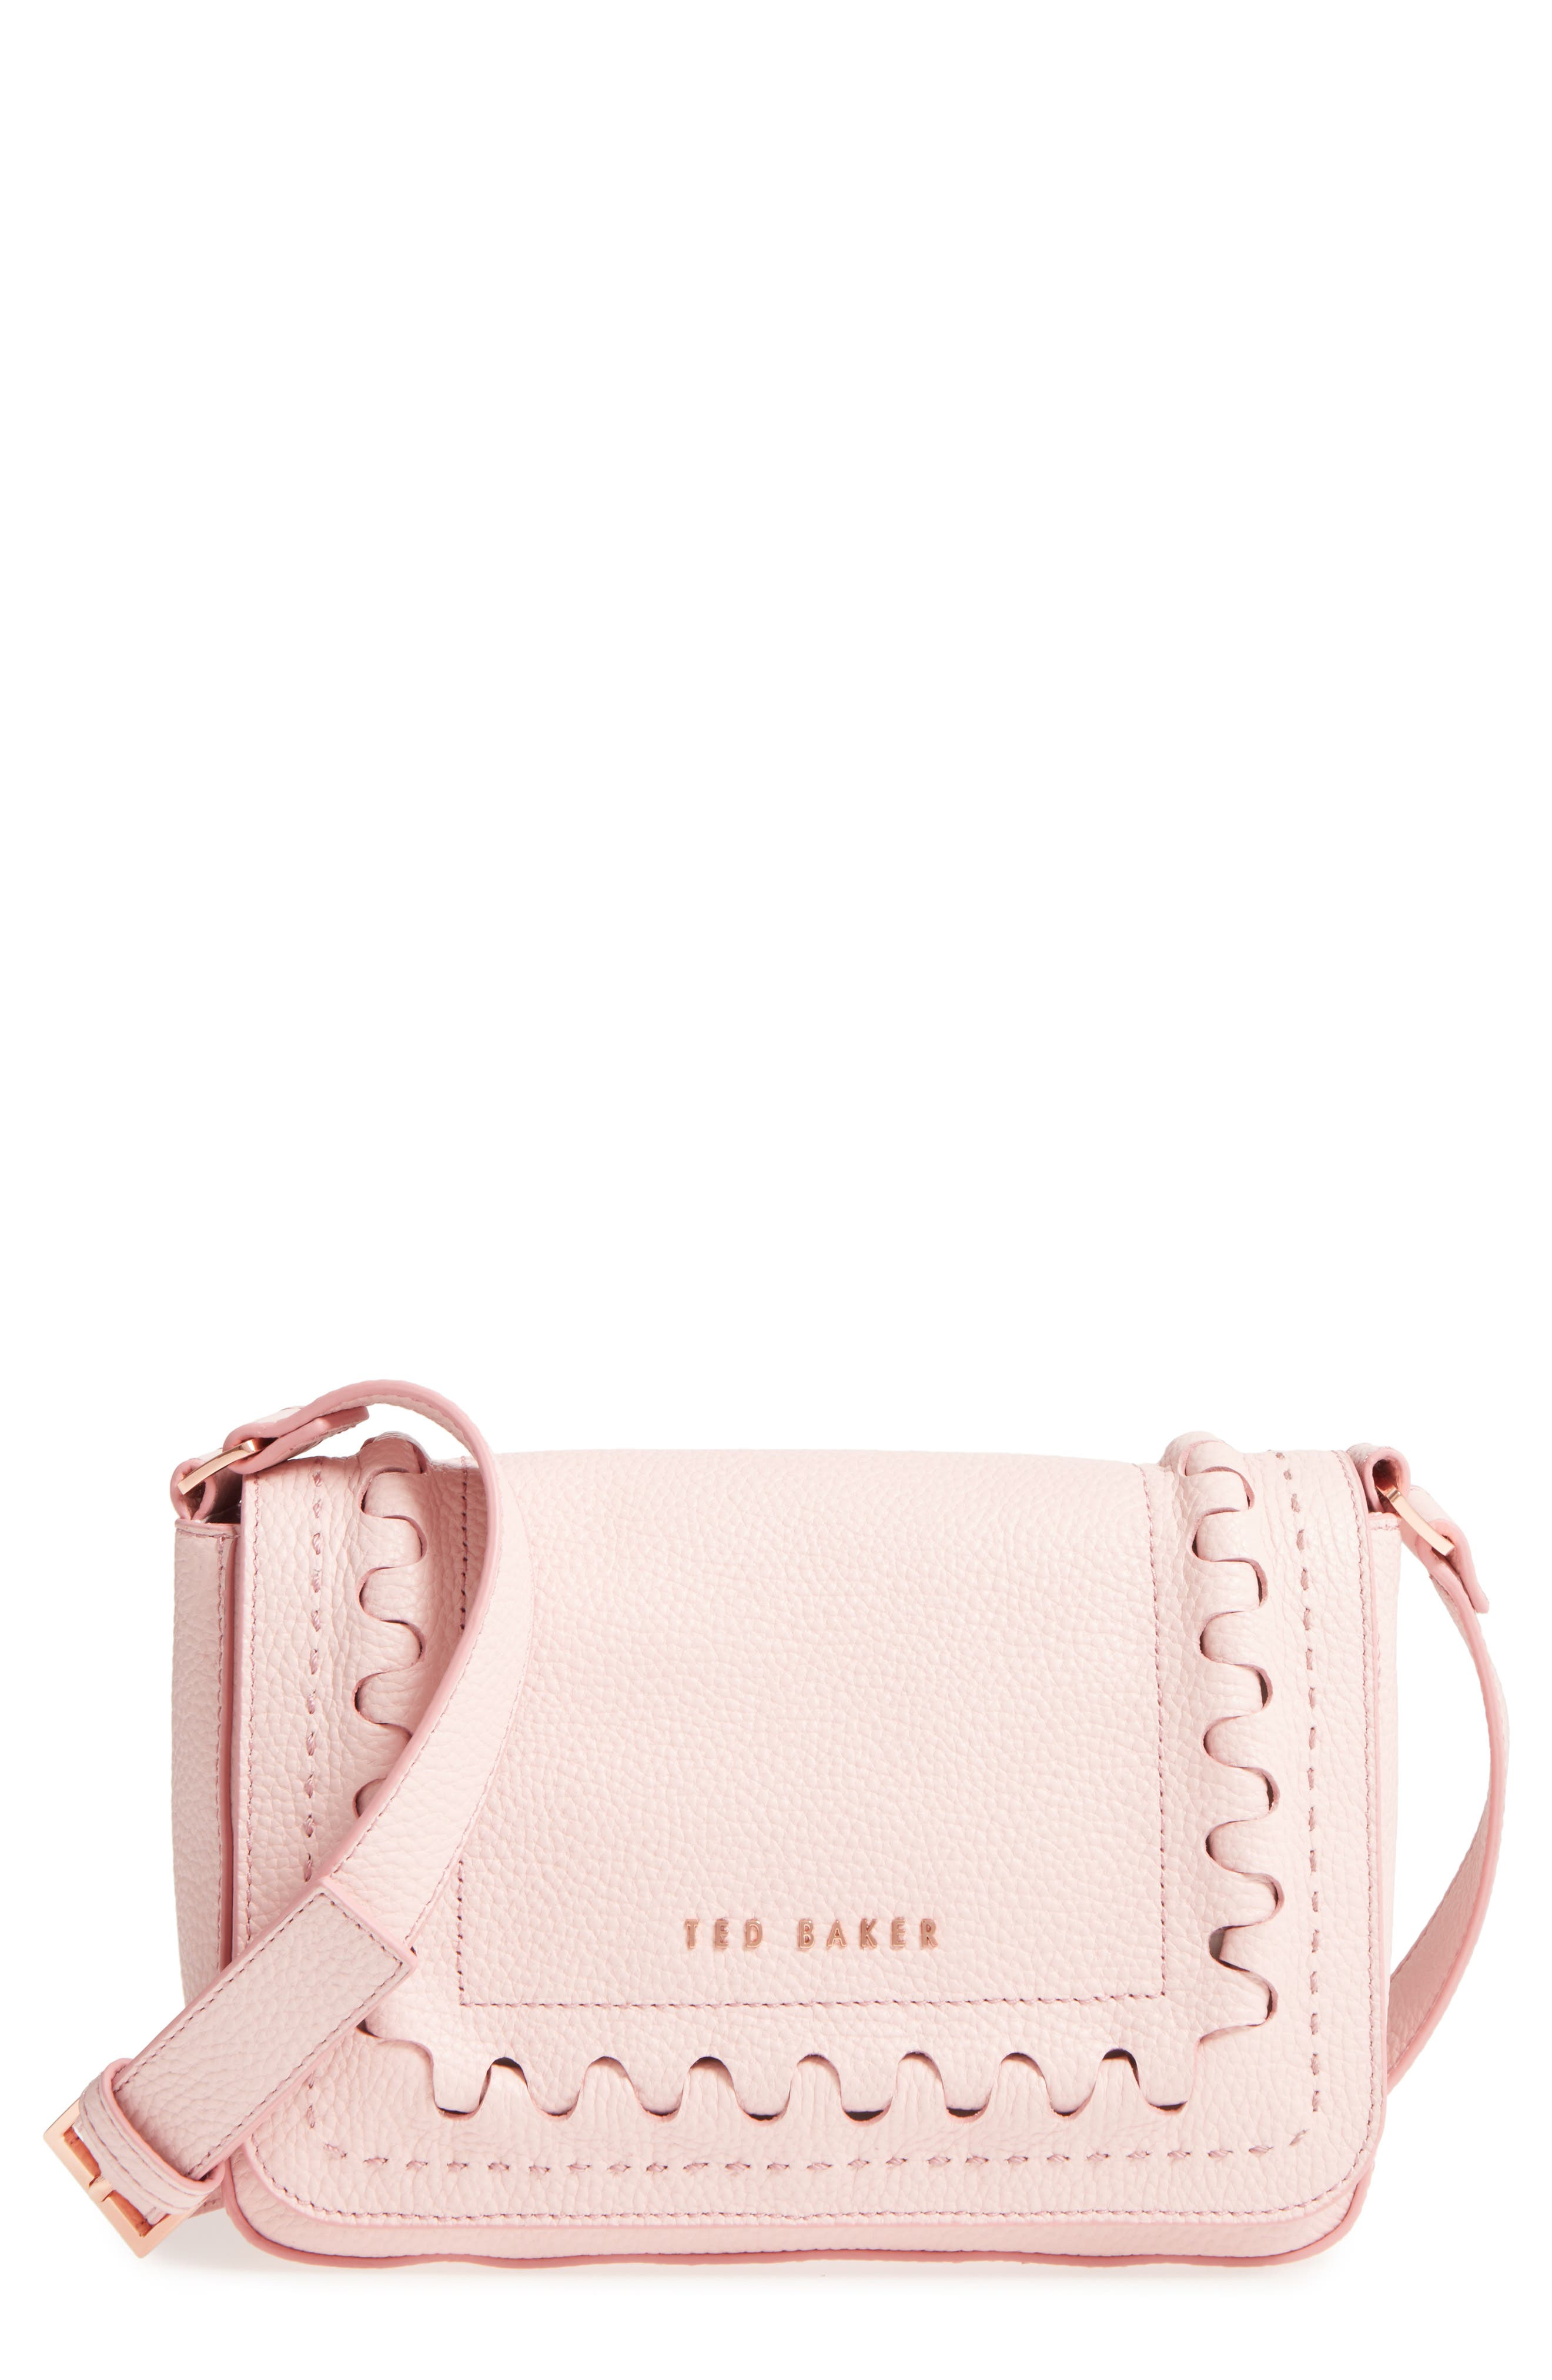 Tippi Leather Crossbody Bag,                             Main thumbnail 1, color,                             Light Pink